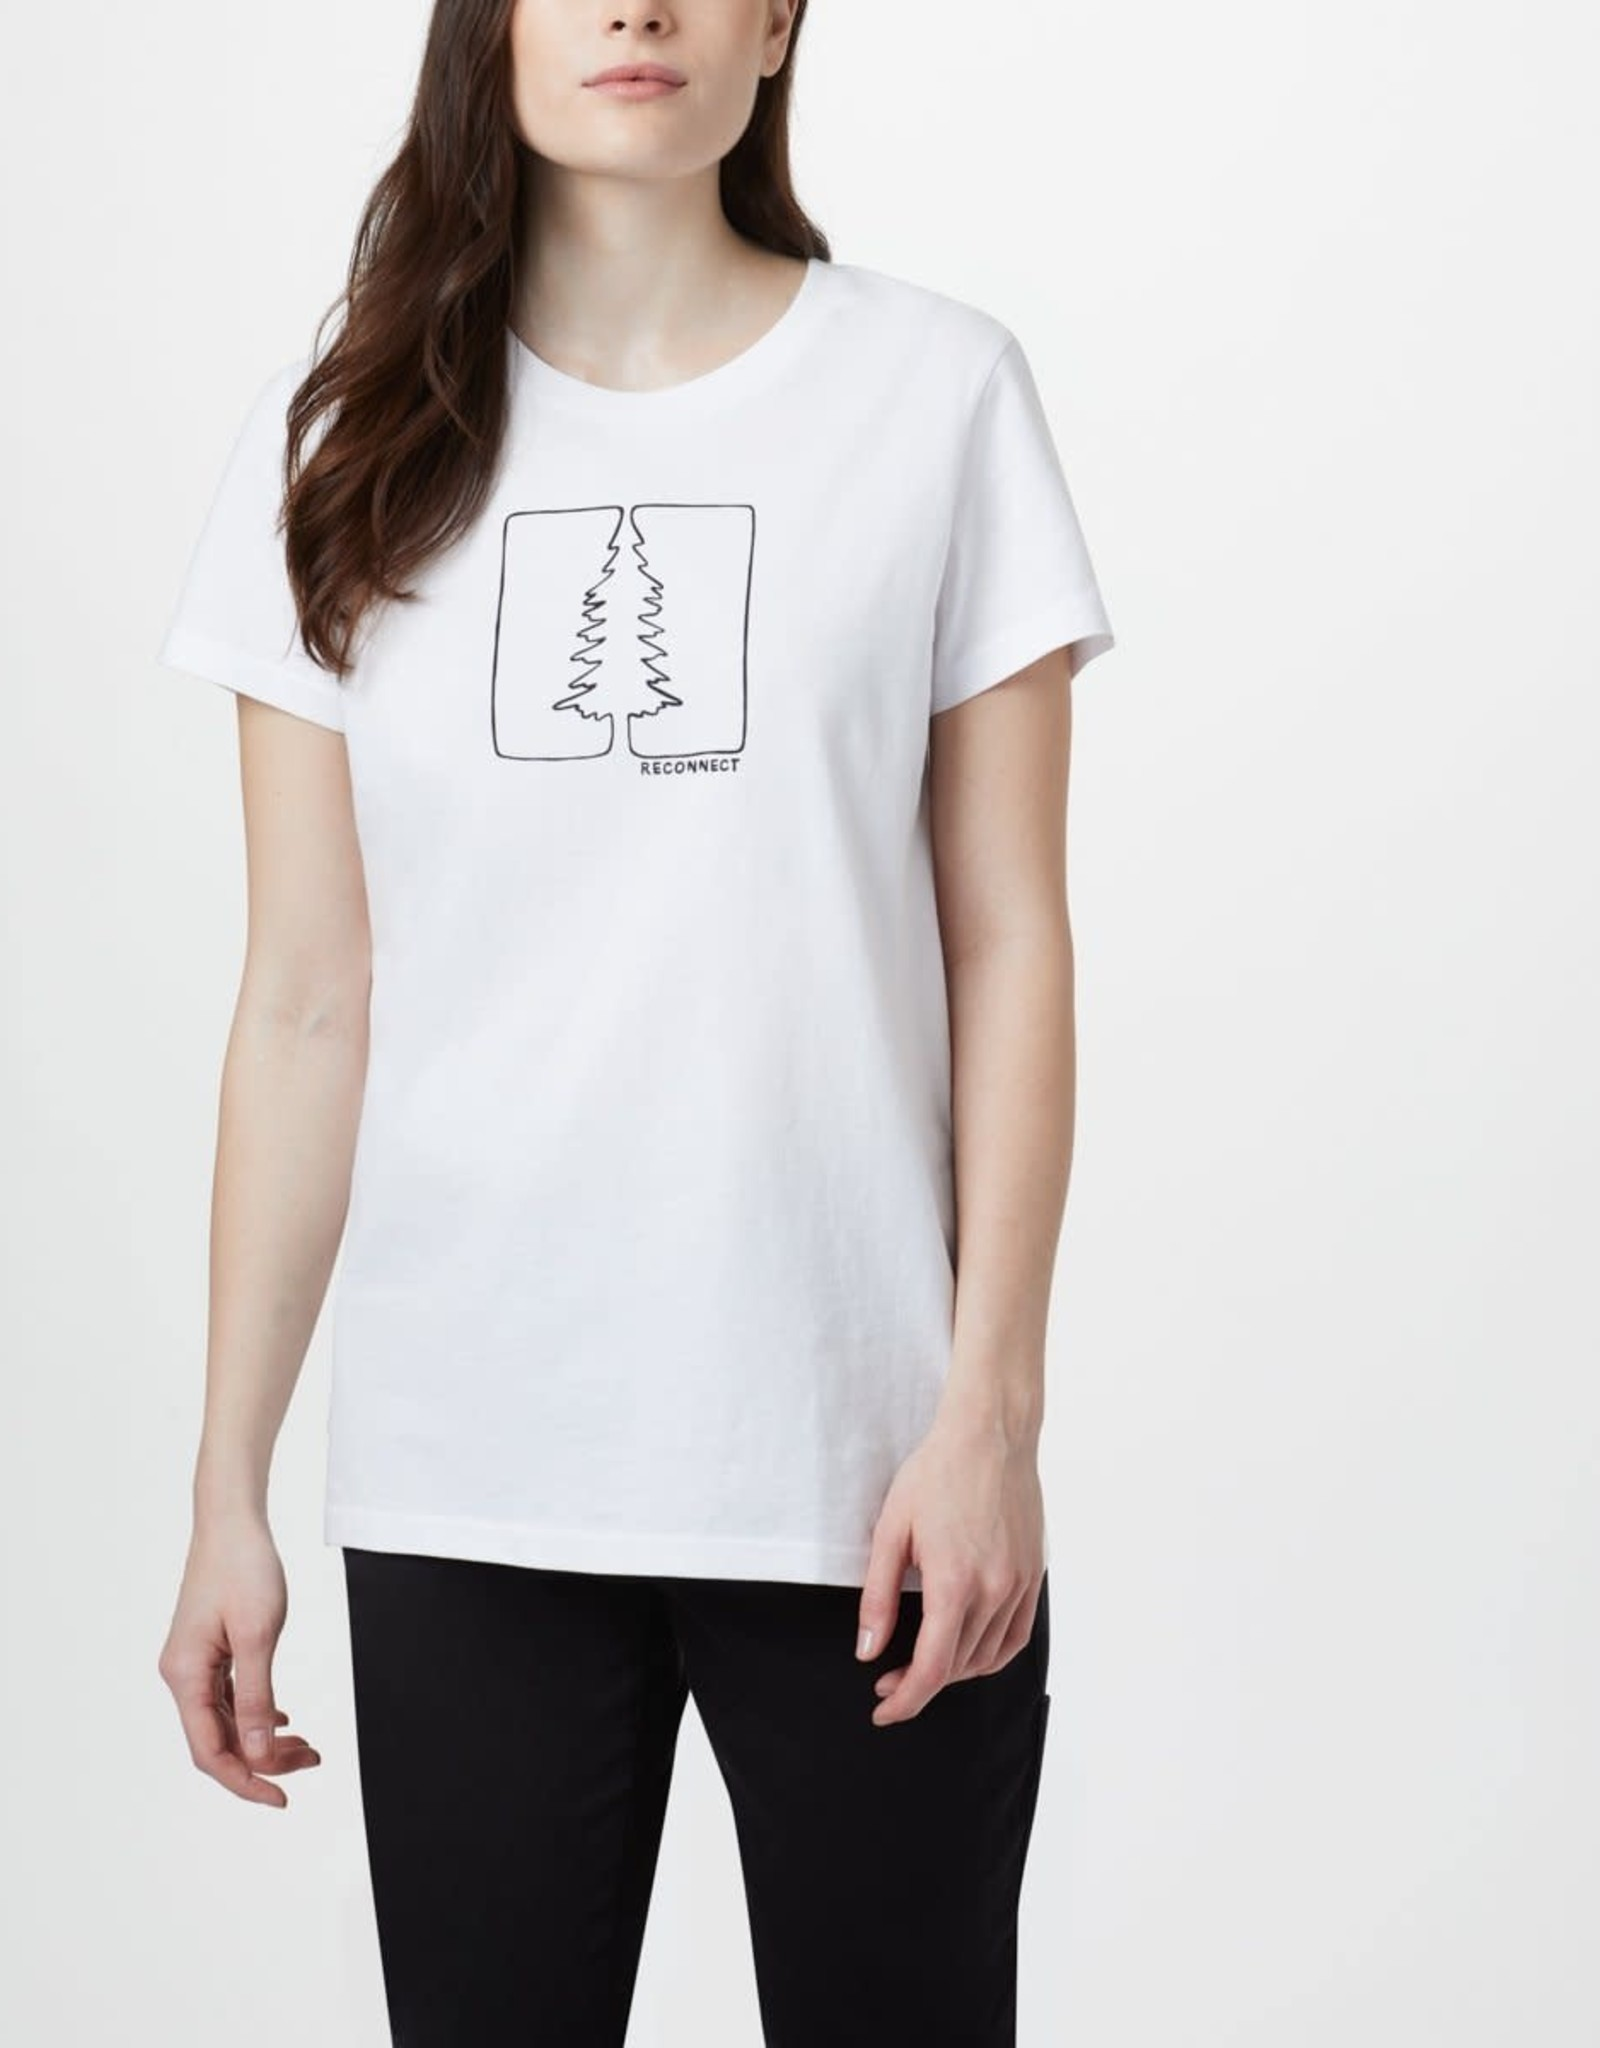 tentree Reconnect Tee